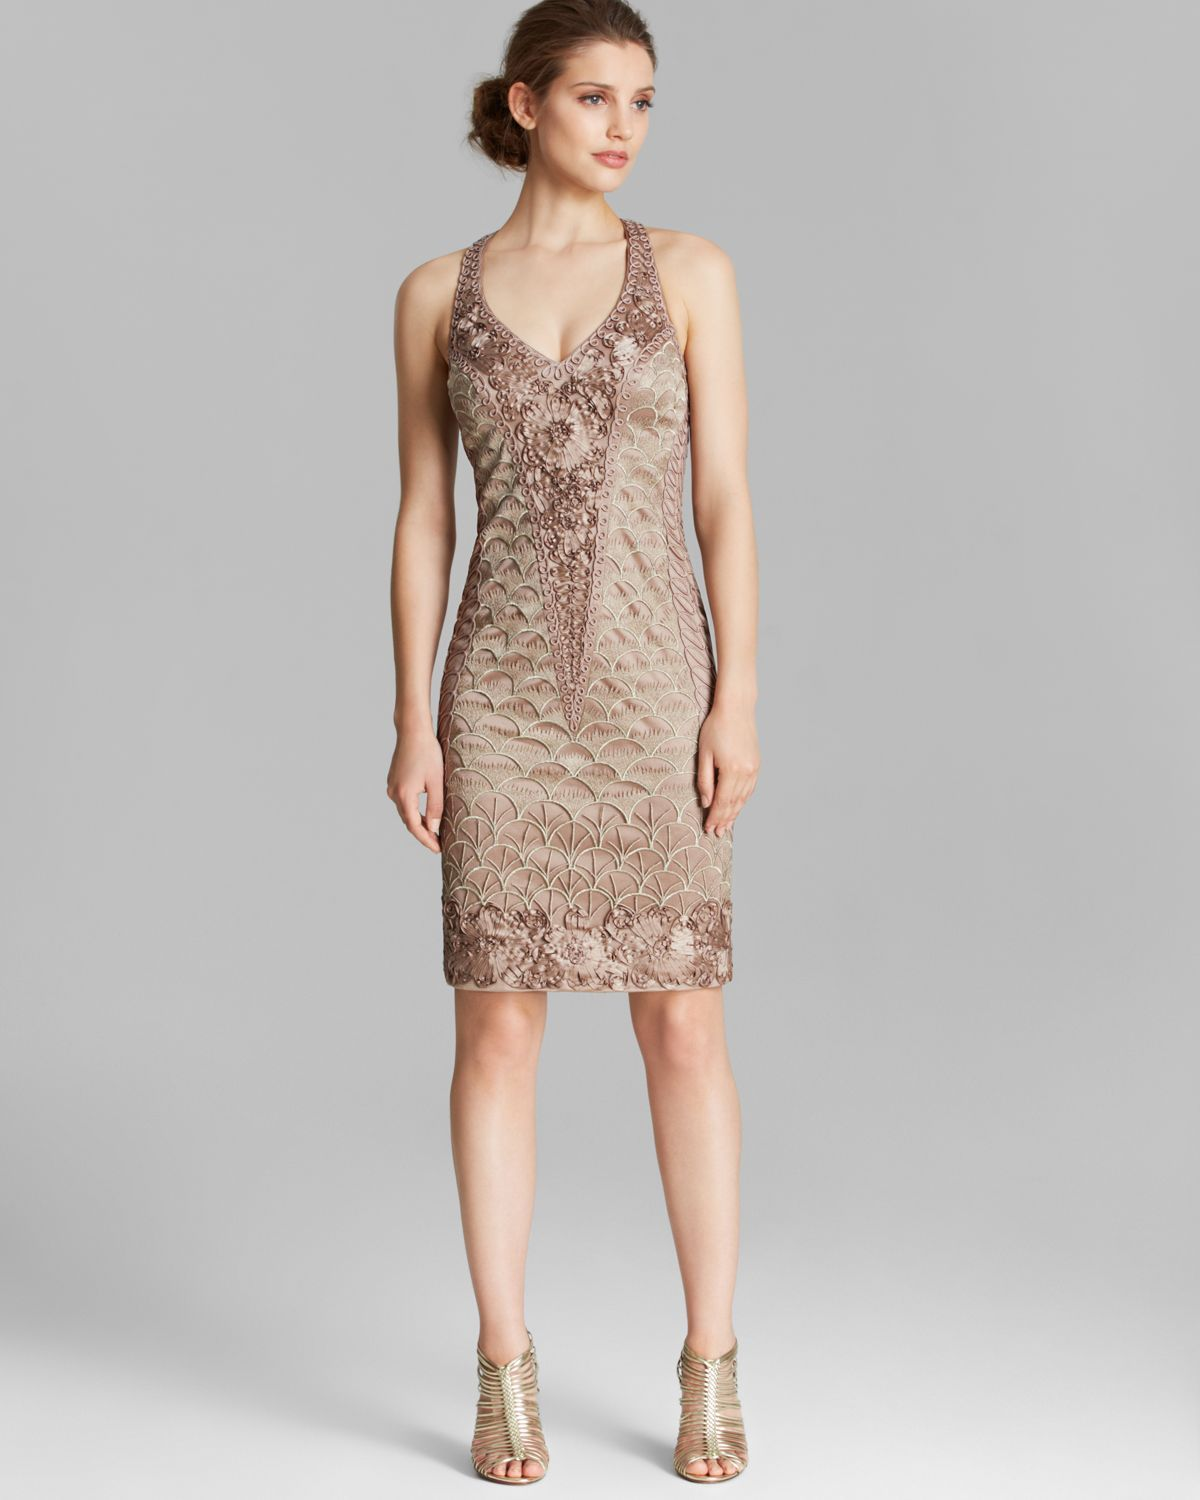 Image result for sue wong dresses | my style | Pinterest | Sue wong